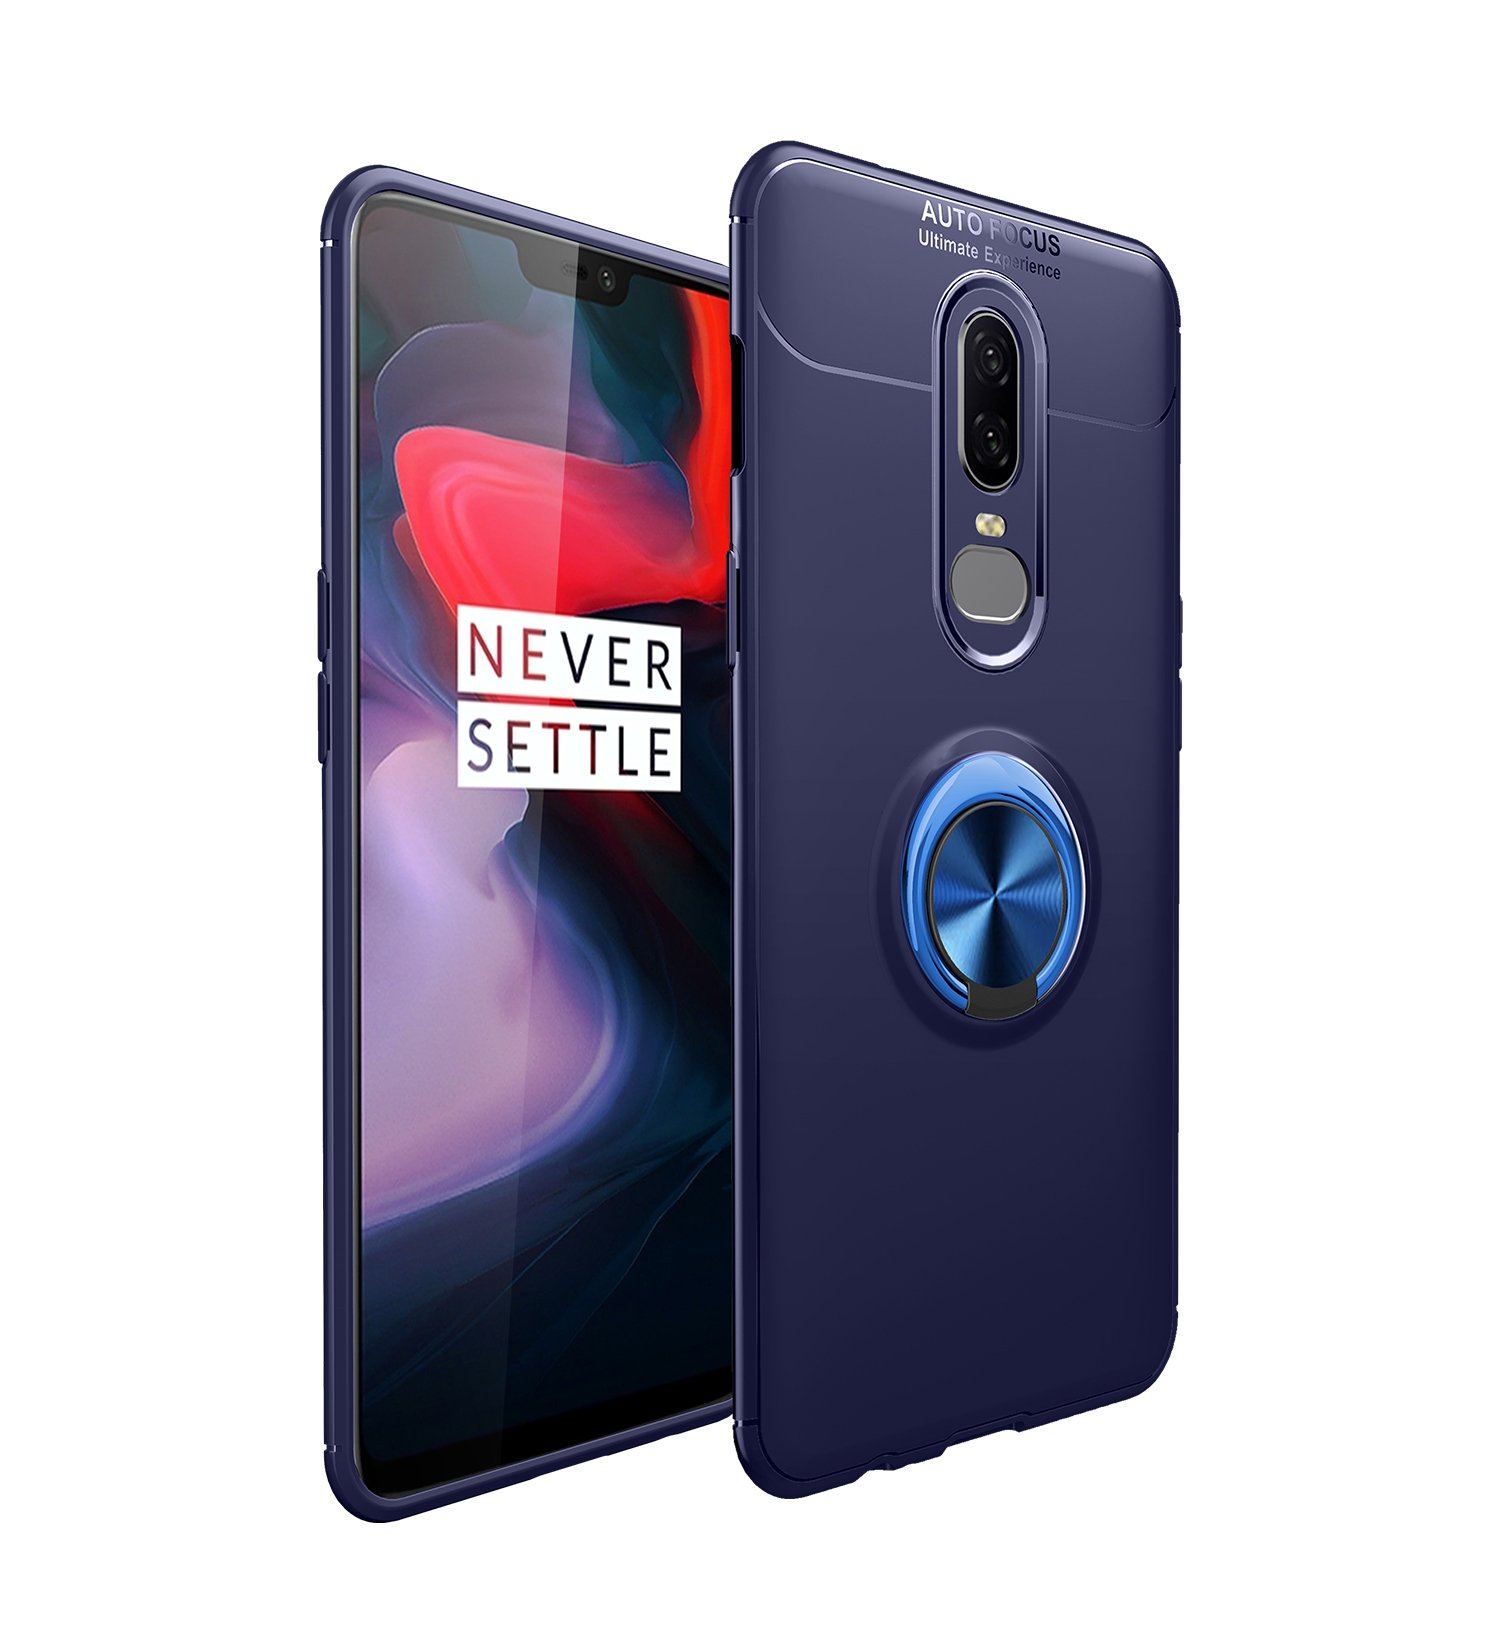 OnePlus 6T Case with HD Screen Protector,I VIKKLY Slim Flexible and Durable Soft [TPU] 360 Degree Rotating Ring Kickstand Shockproof Case Fit Magnetic Car Mount for OnePlus 6T 6.4'' (2018) (Navy Blue) by I VIKKLY (Image #2)